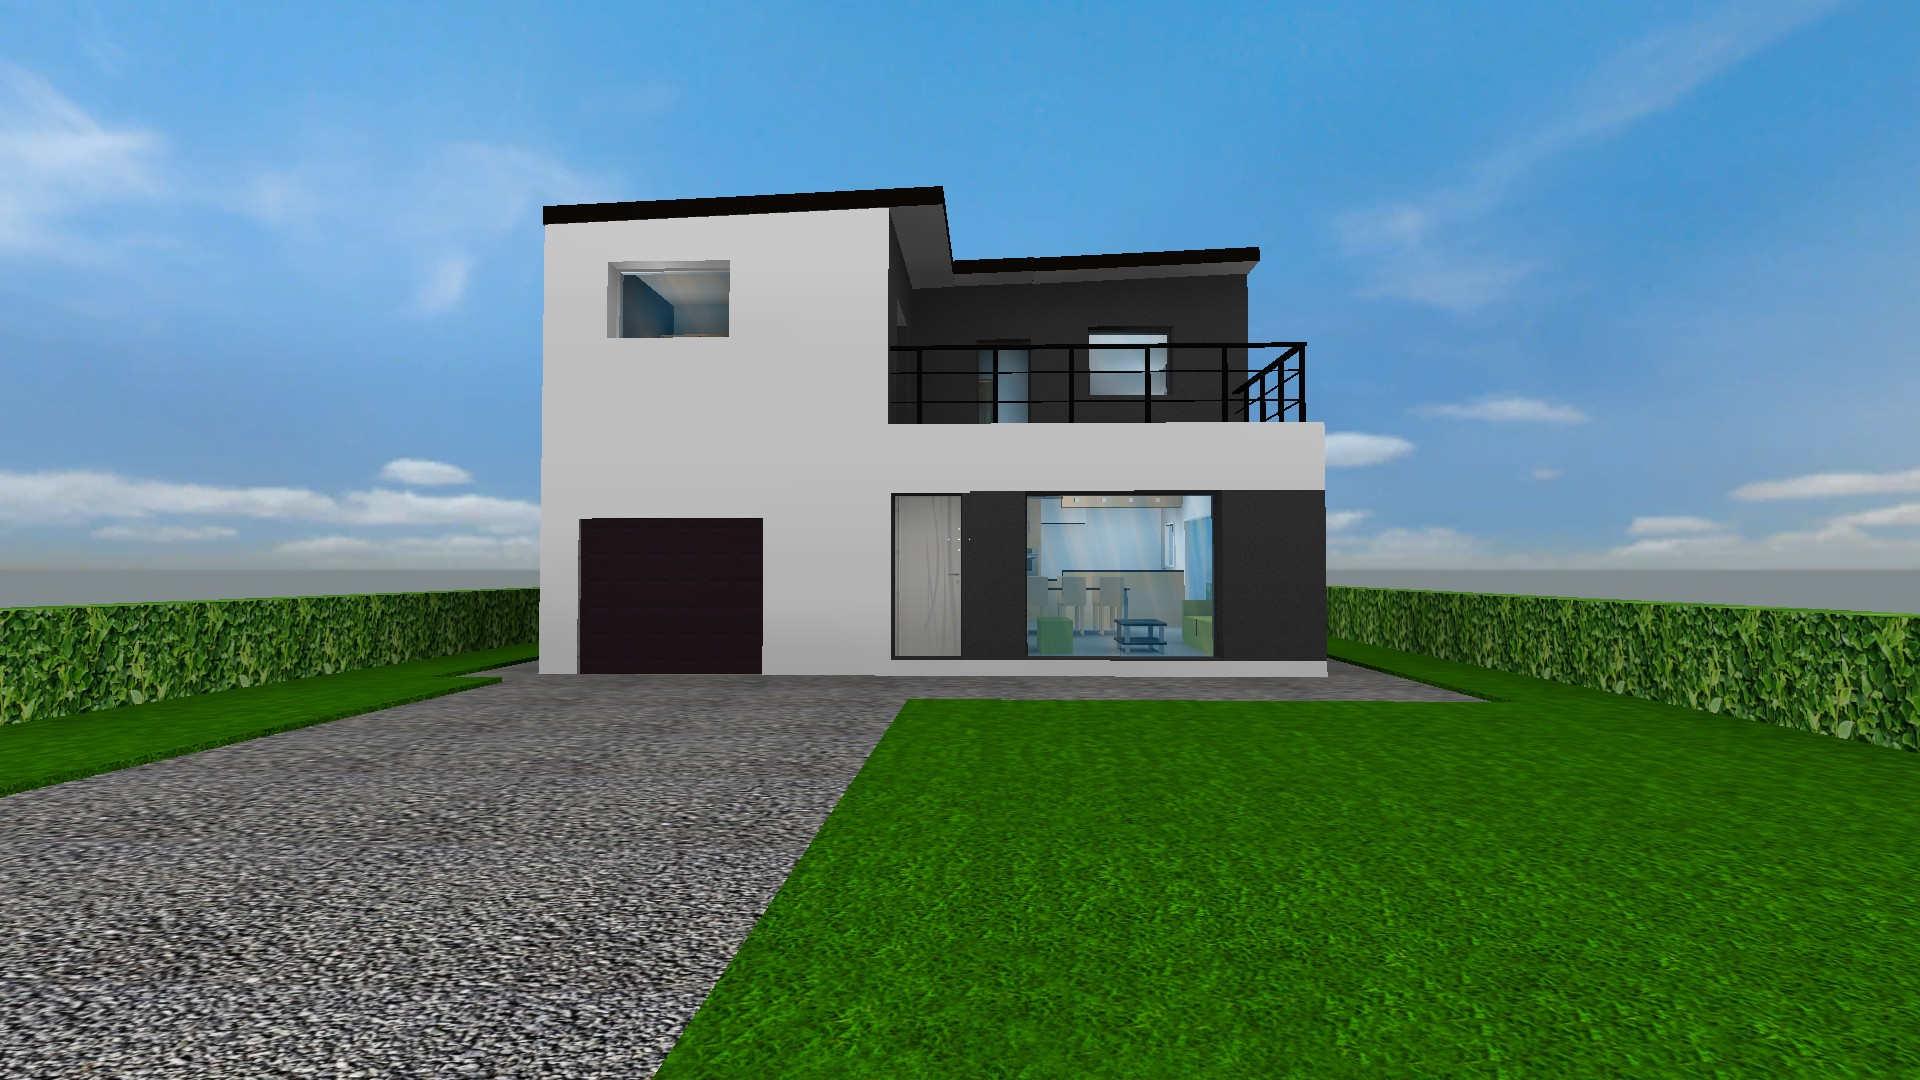 home model using hl source some views of a house construction project using half life source engine i realized - Home Model Pictures